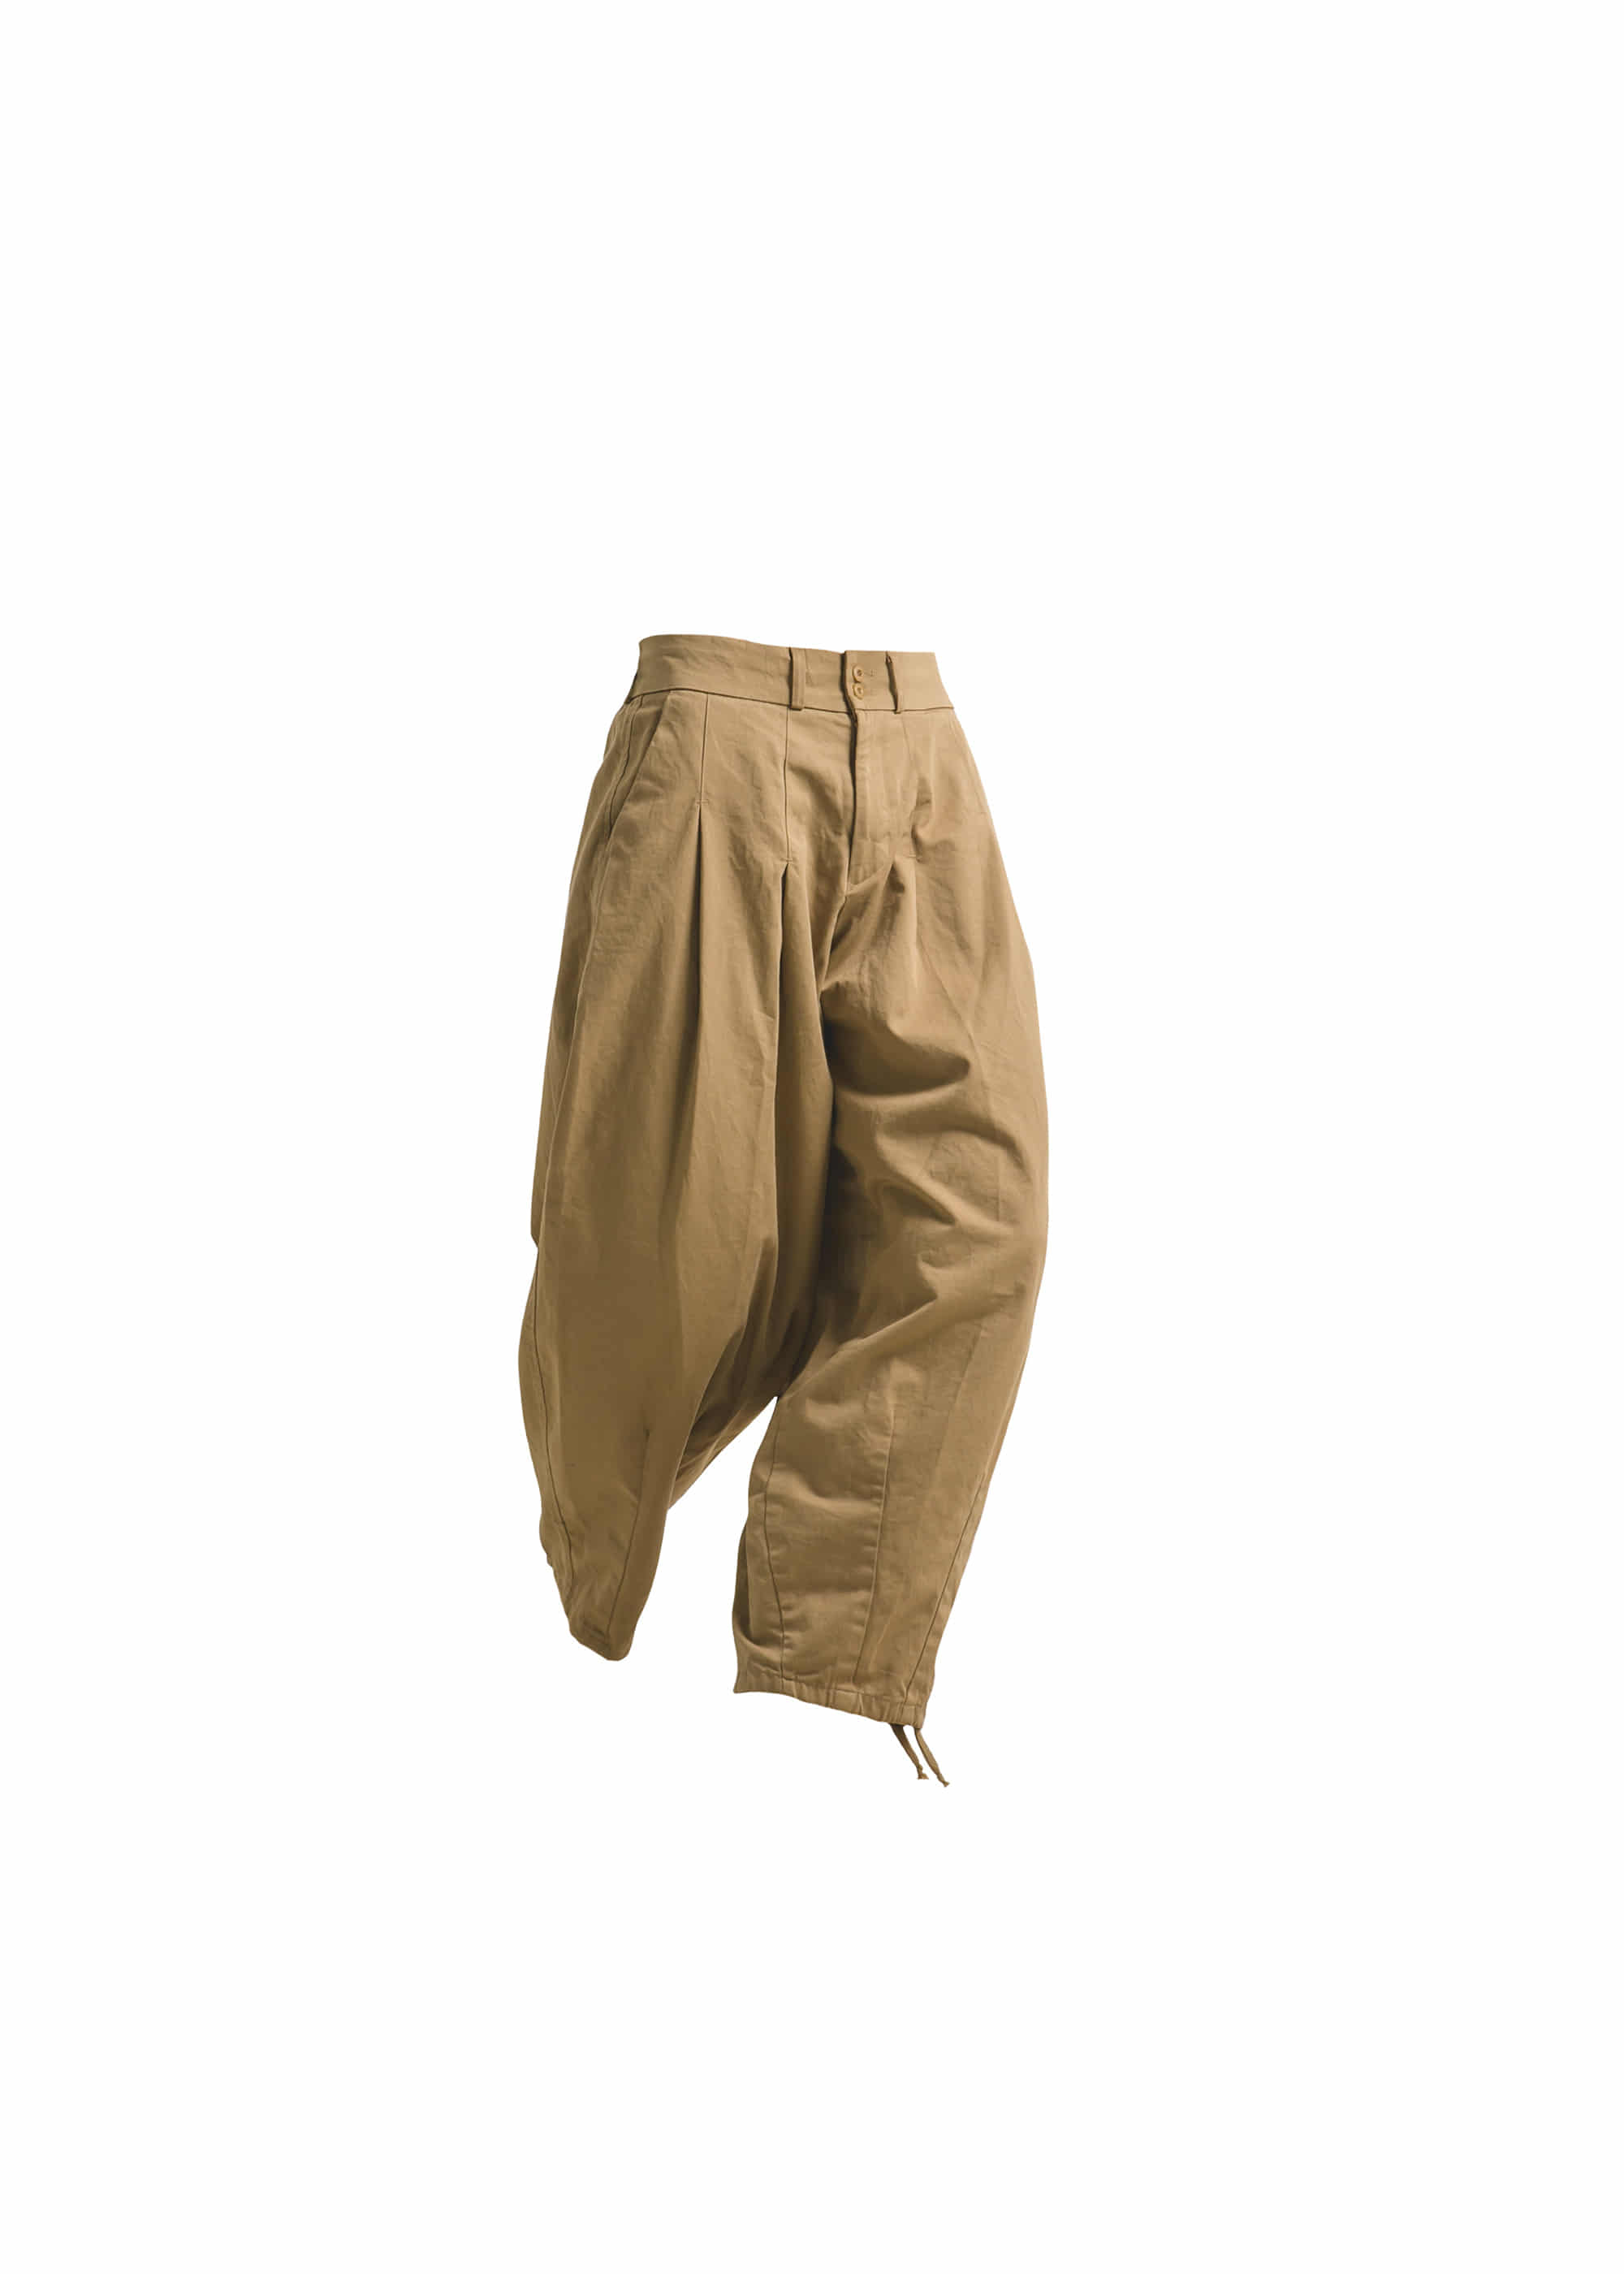 [AG] Cotton Easy Balloon Pants - Beige [Pre-Order]